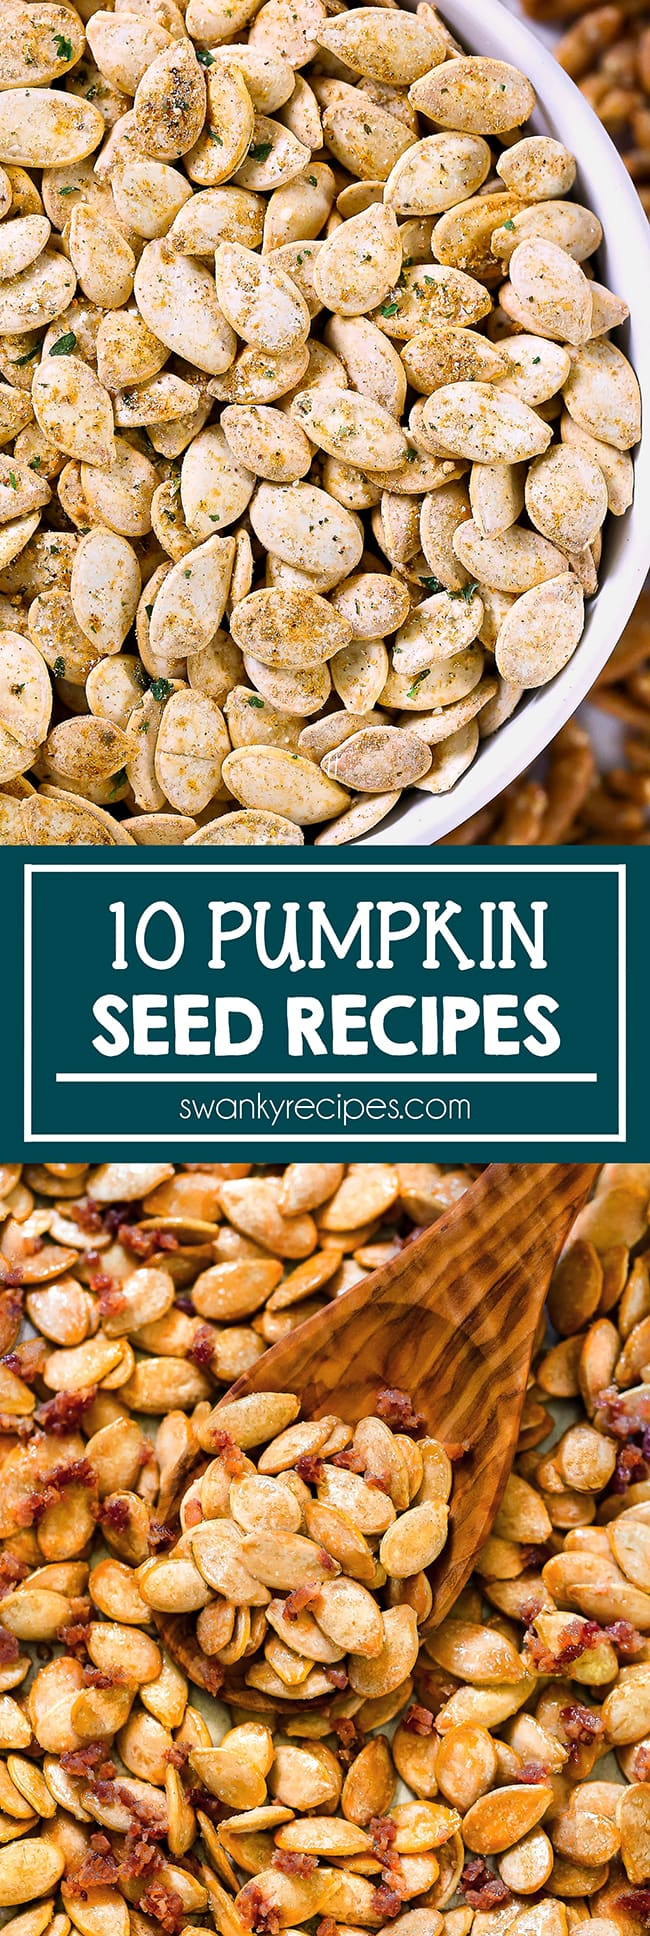 Ranch pumpkin seeds in a white bowl on a sheet pan with pretzels in the background. Ranch pumpkin seeds are roasted with yellow seasoning on top. Text in center reads 10 pumpkin seed recipes in a blue border. Second photo is of maple bacon pumpkin seeds scattered on a sheet pan with a wooden spoon scooping the seeds. Seeds are tinted yellow red with crumbled pieces of bacon throughout the dish.